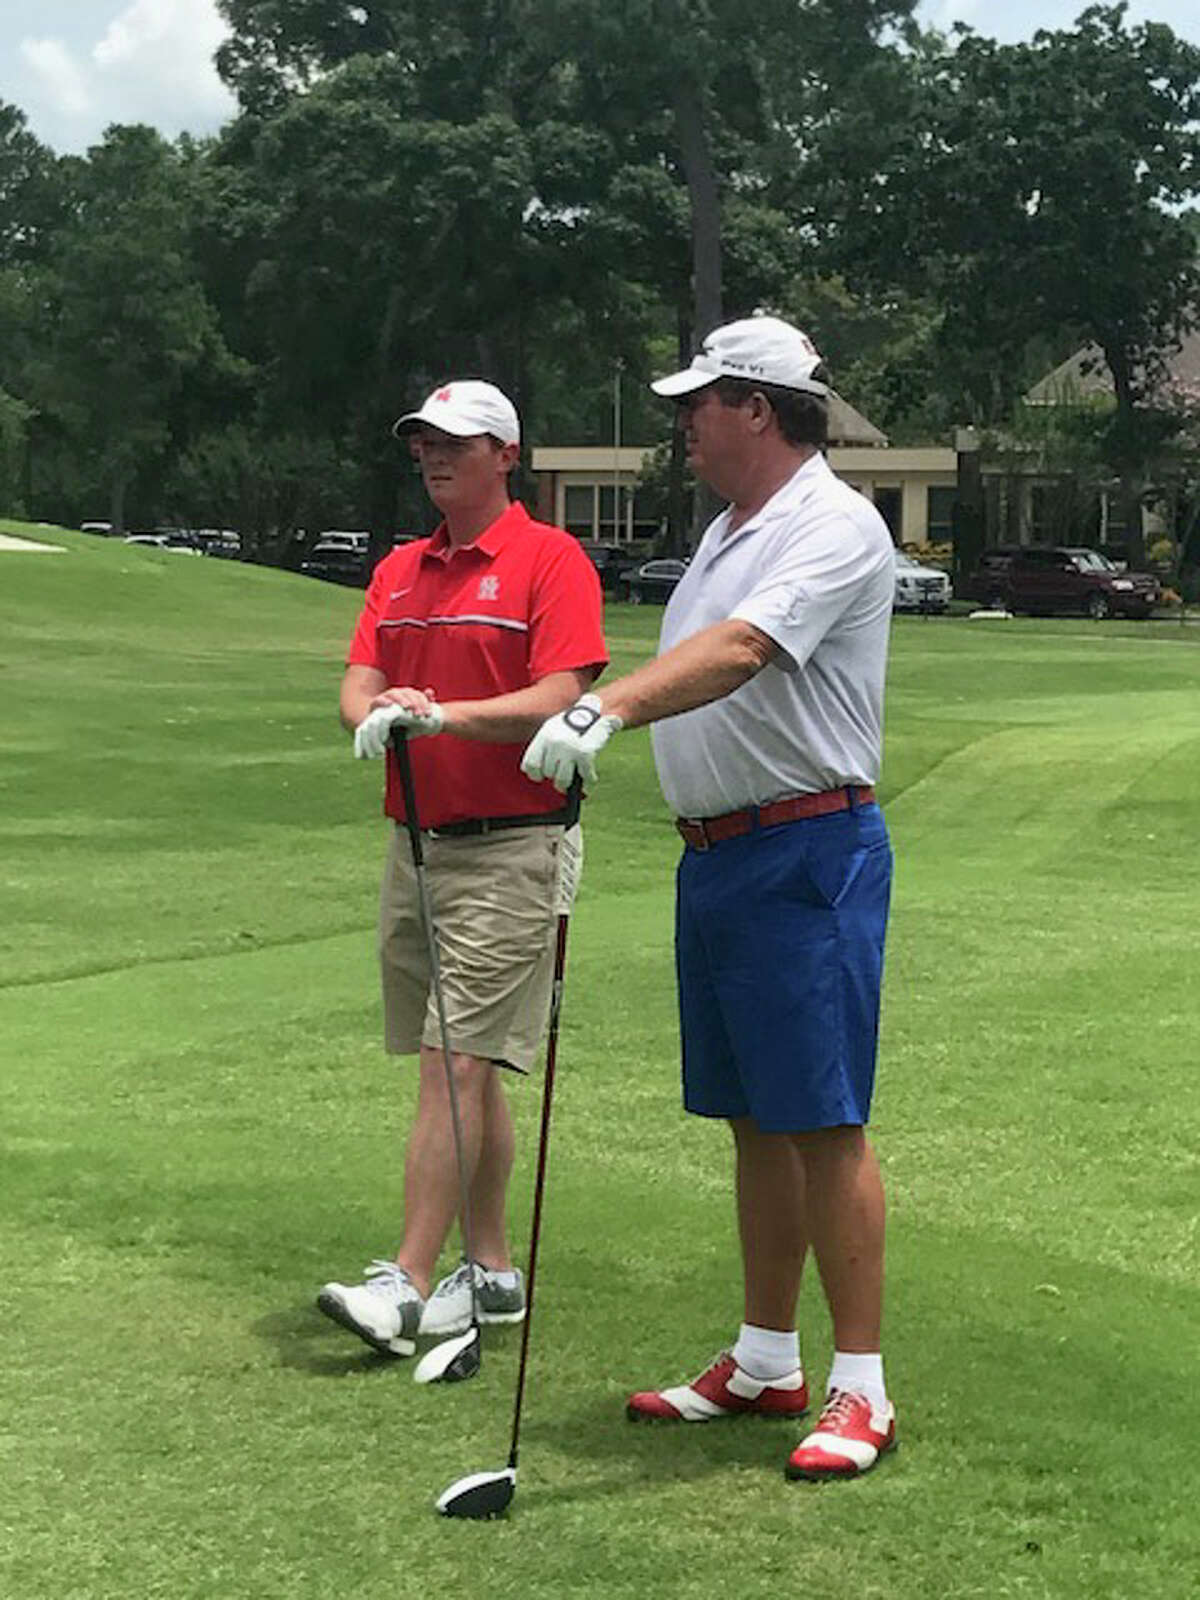 Major Applewhite (left) and Steve Elkington chat during the golf tournament Monday at Kingwood Country Club.